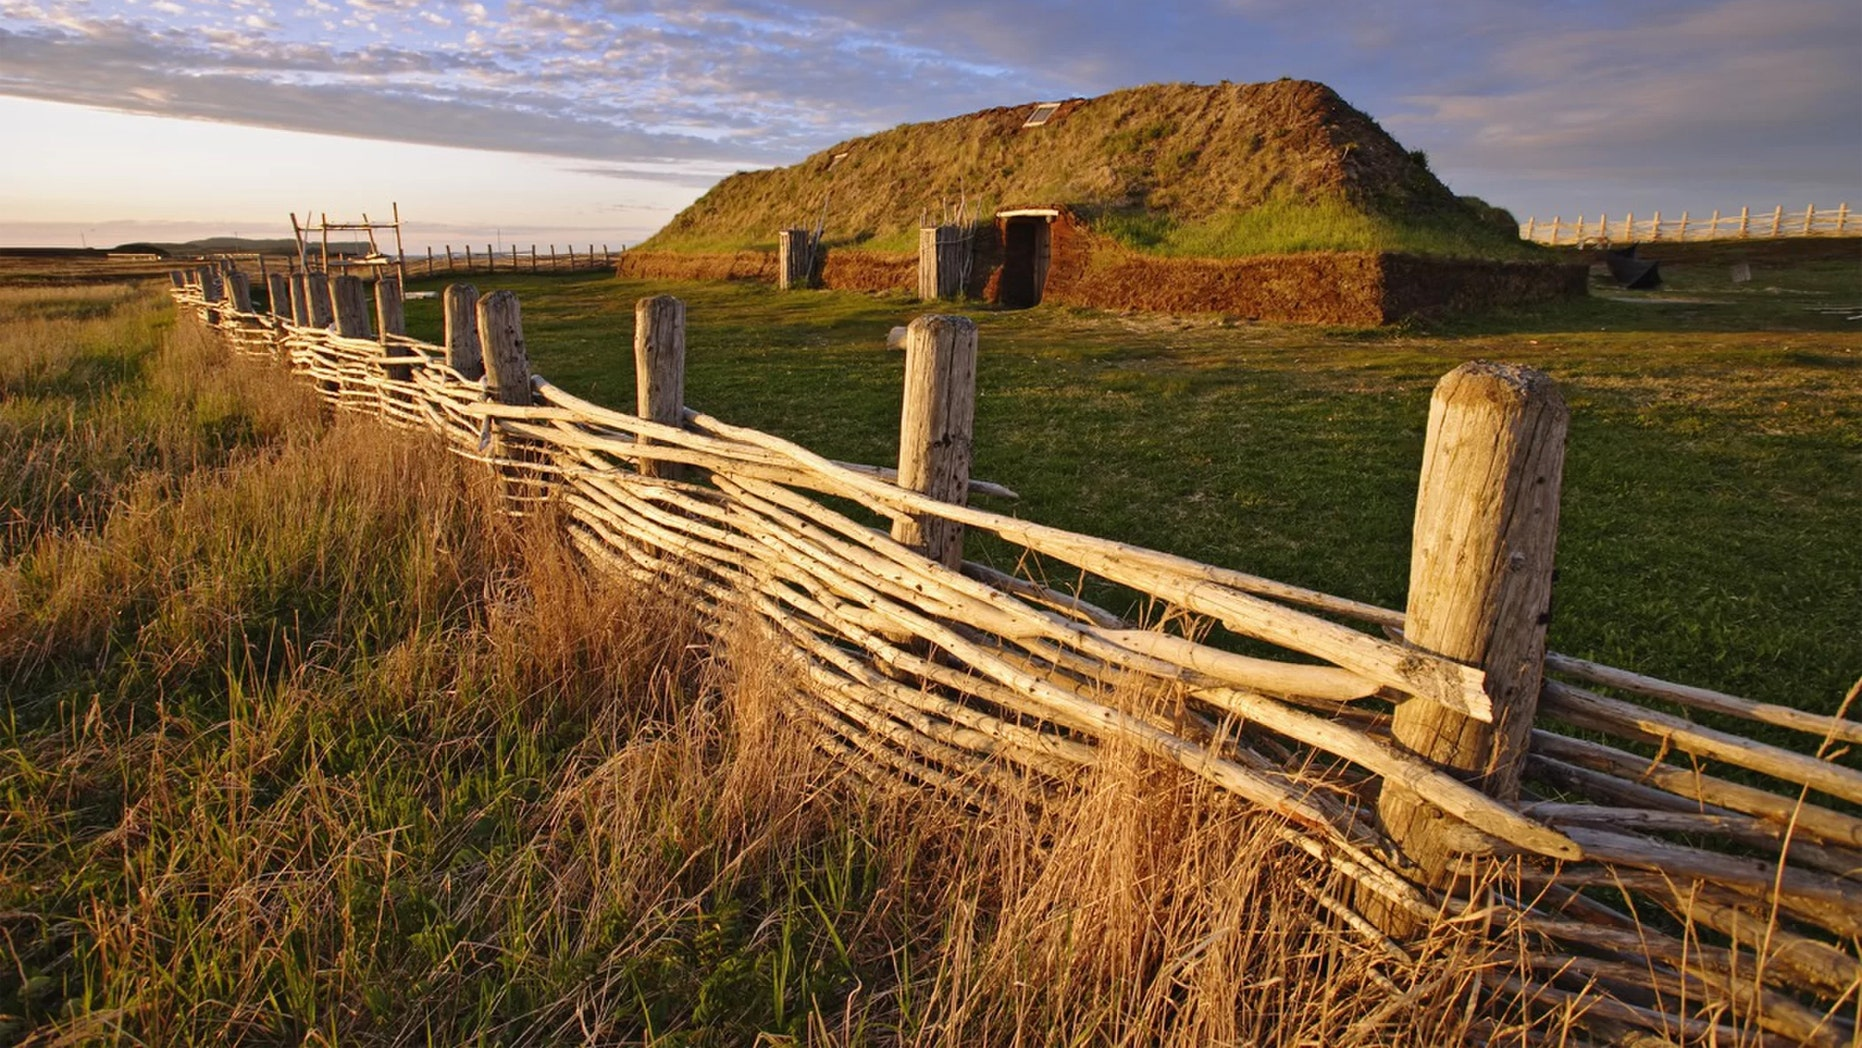 The L'Anse aux Meadows archaeological site is the only confirmed Viking settlement in Newfoundland. Credit: Yves Marcoux/First Light/Getty Images Plus